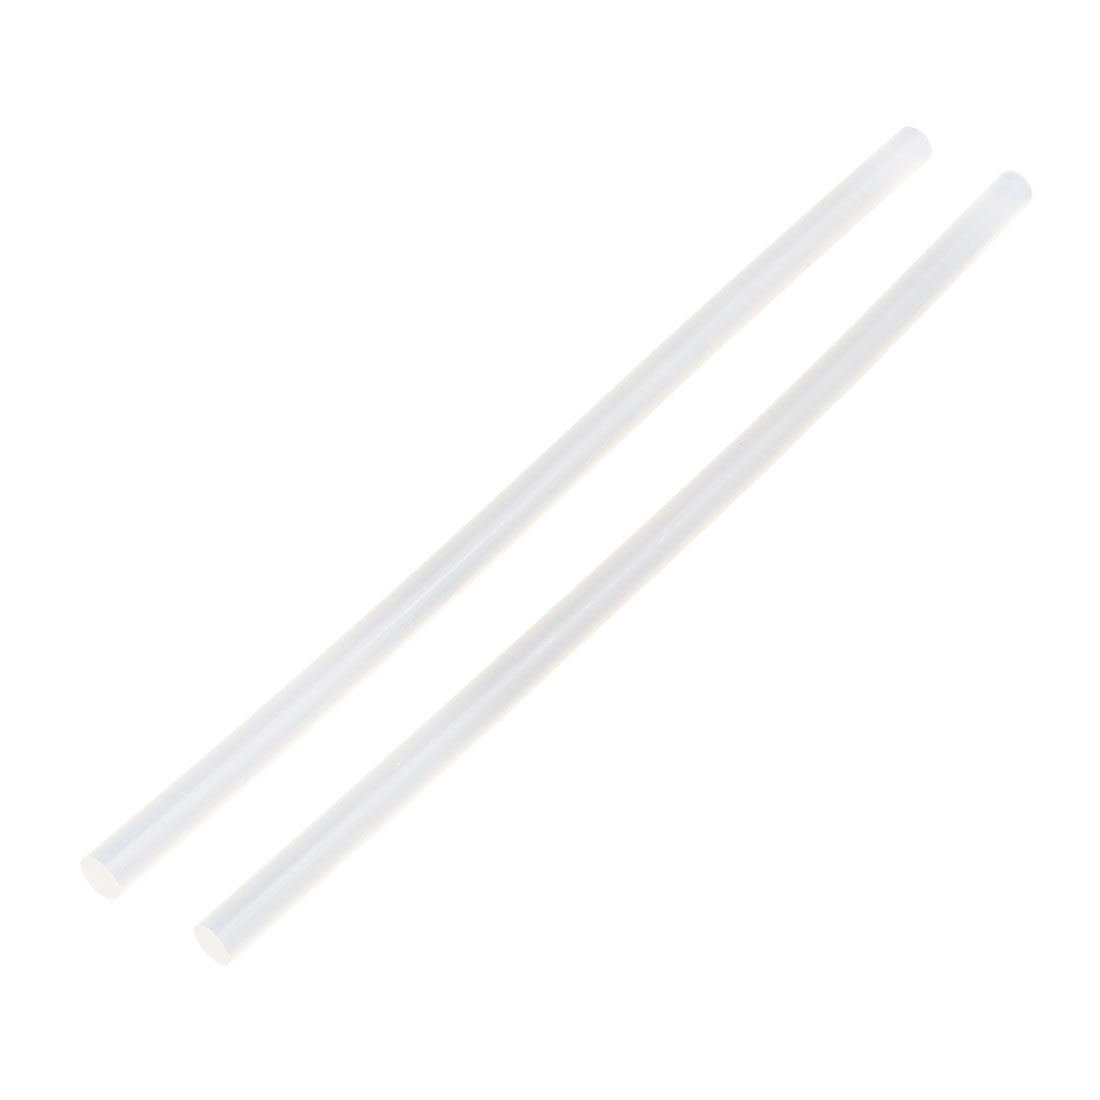 2 Pcs 7mm x 190mm Hot Melt Glue Adhesive Stick Clear for Electric Tool Heating Gun